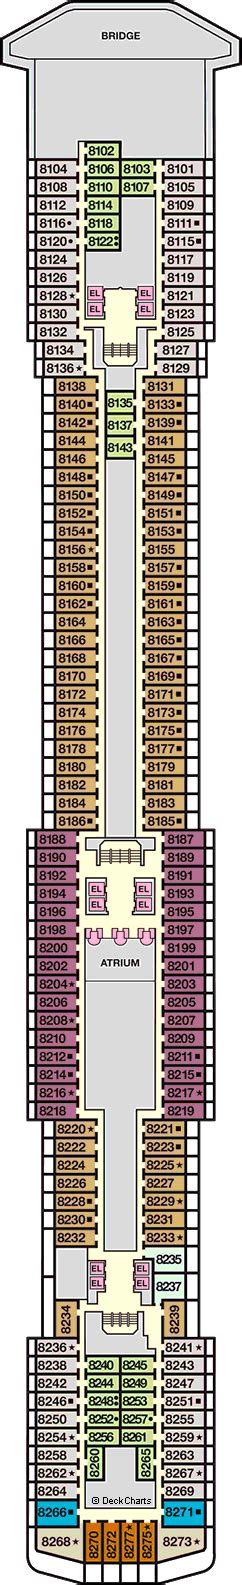 carnival pride floor plan carnival pride cruise ship deck plans on cruise critic